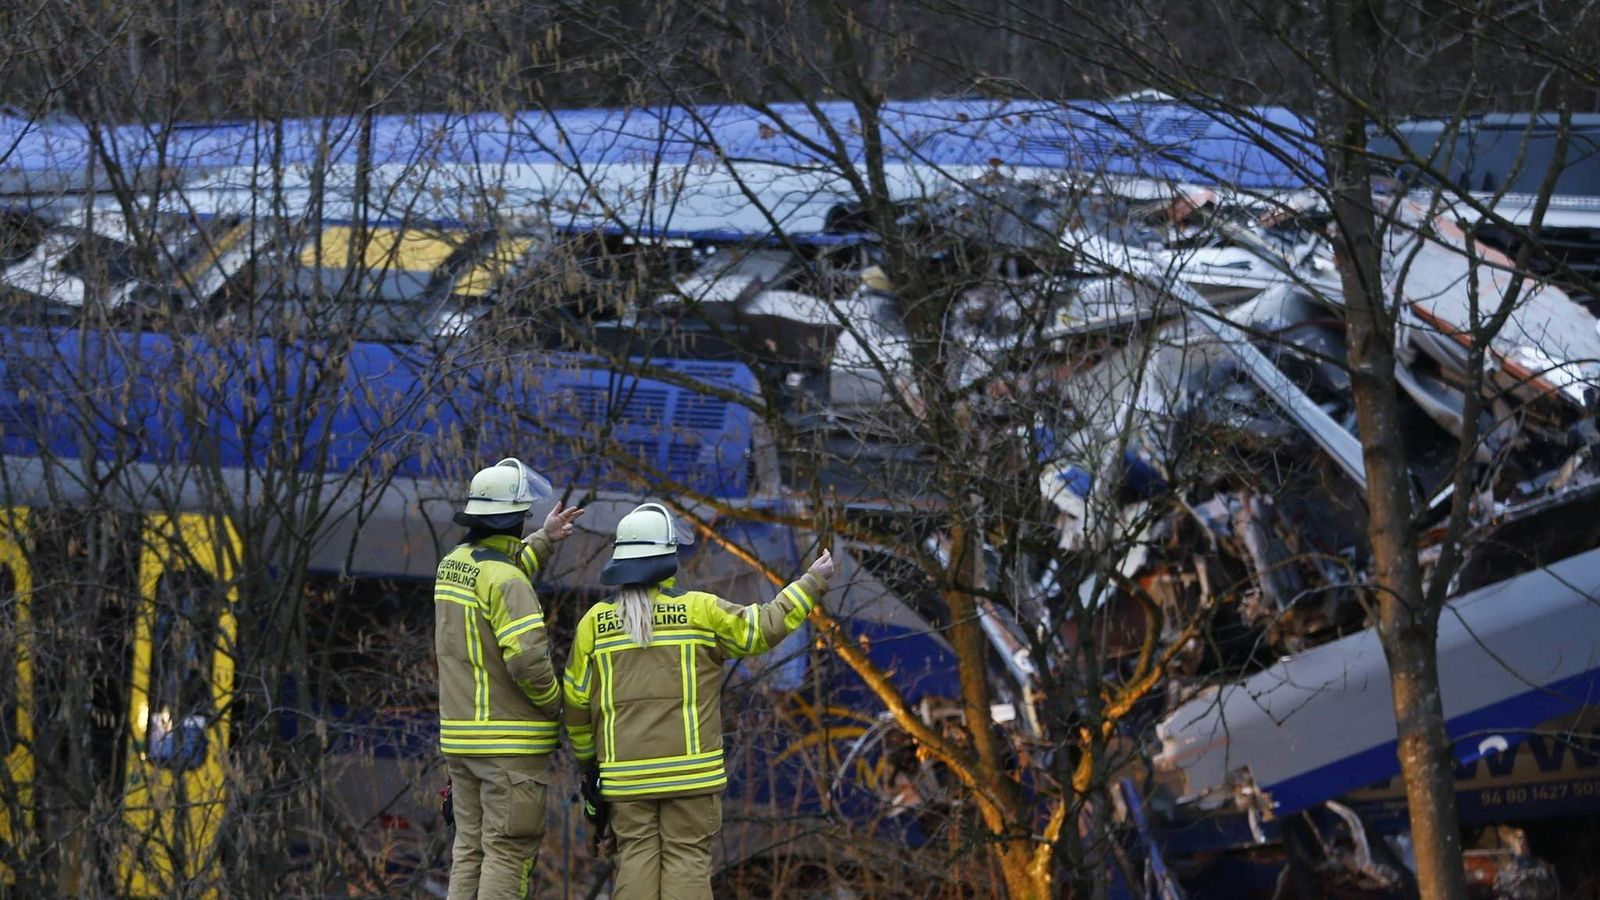 Rescue workers at the scene of the rail crash near Bad Aibling, Germany